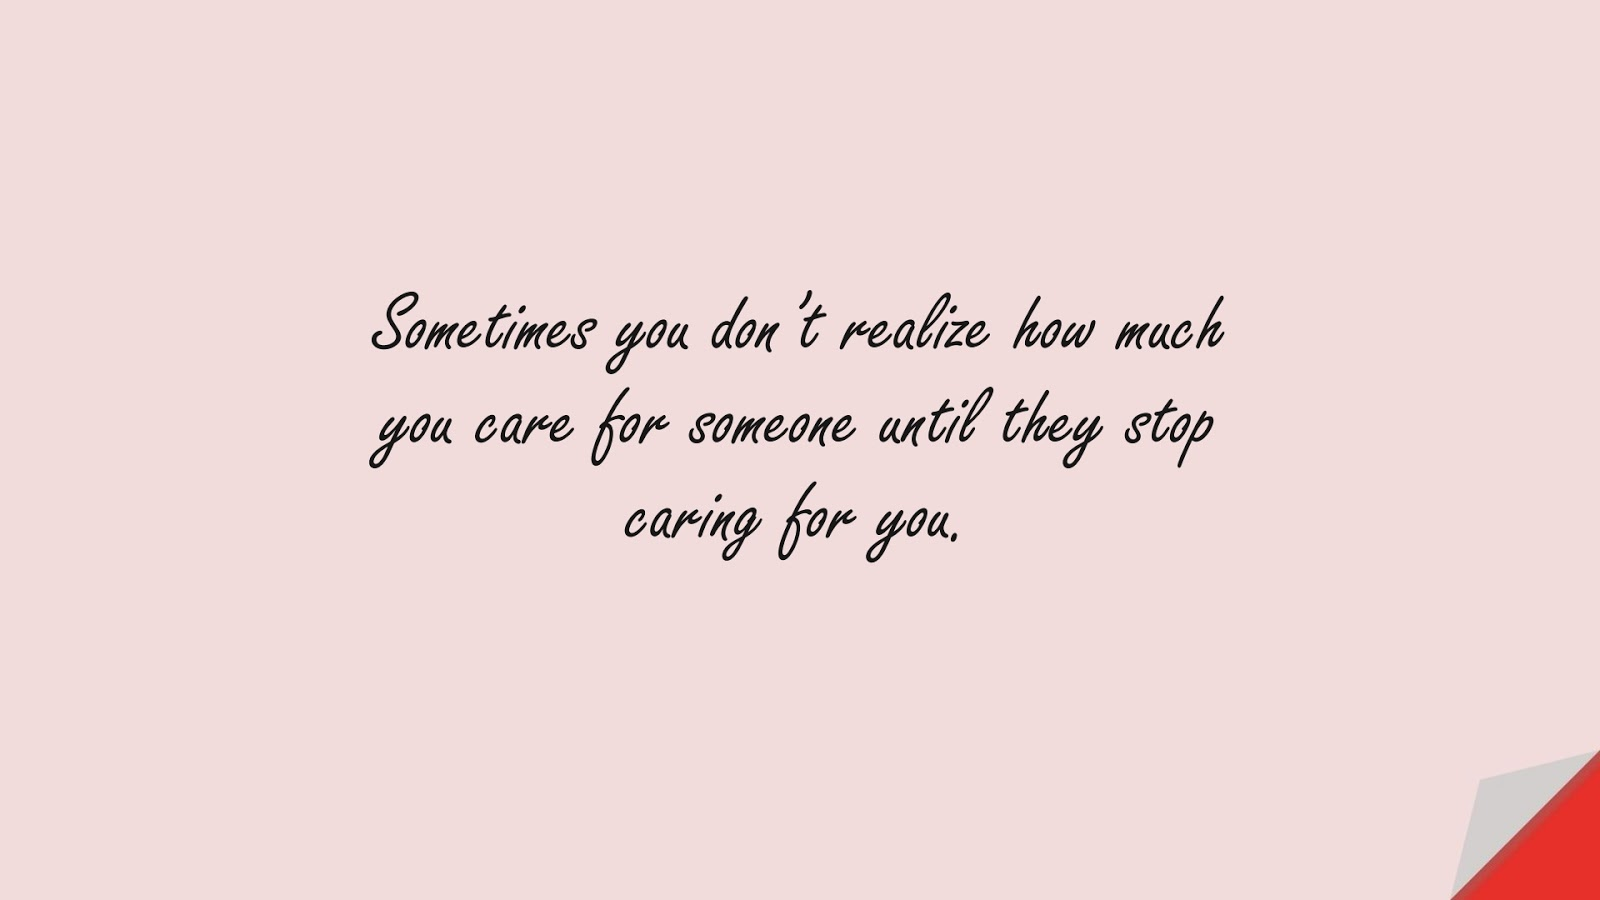 Sometimes you don't realize how much you care for someone until they stop caring for you.FALSE